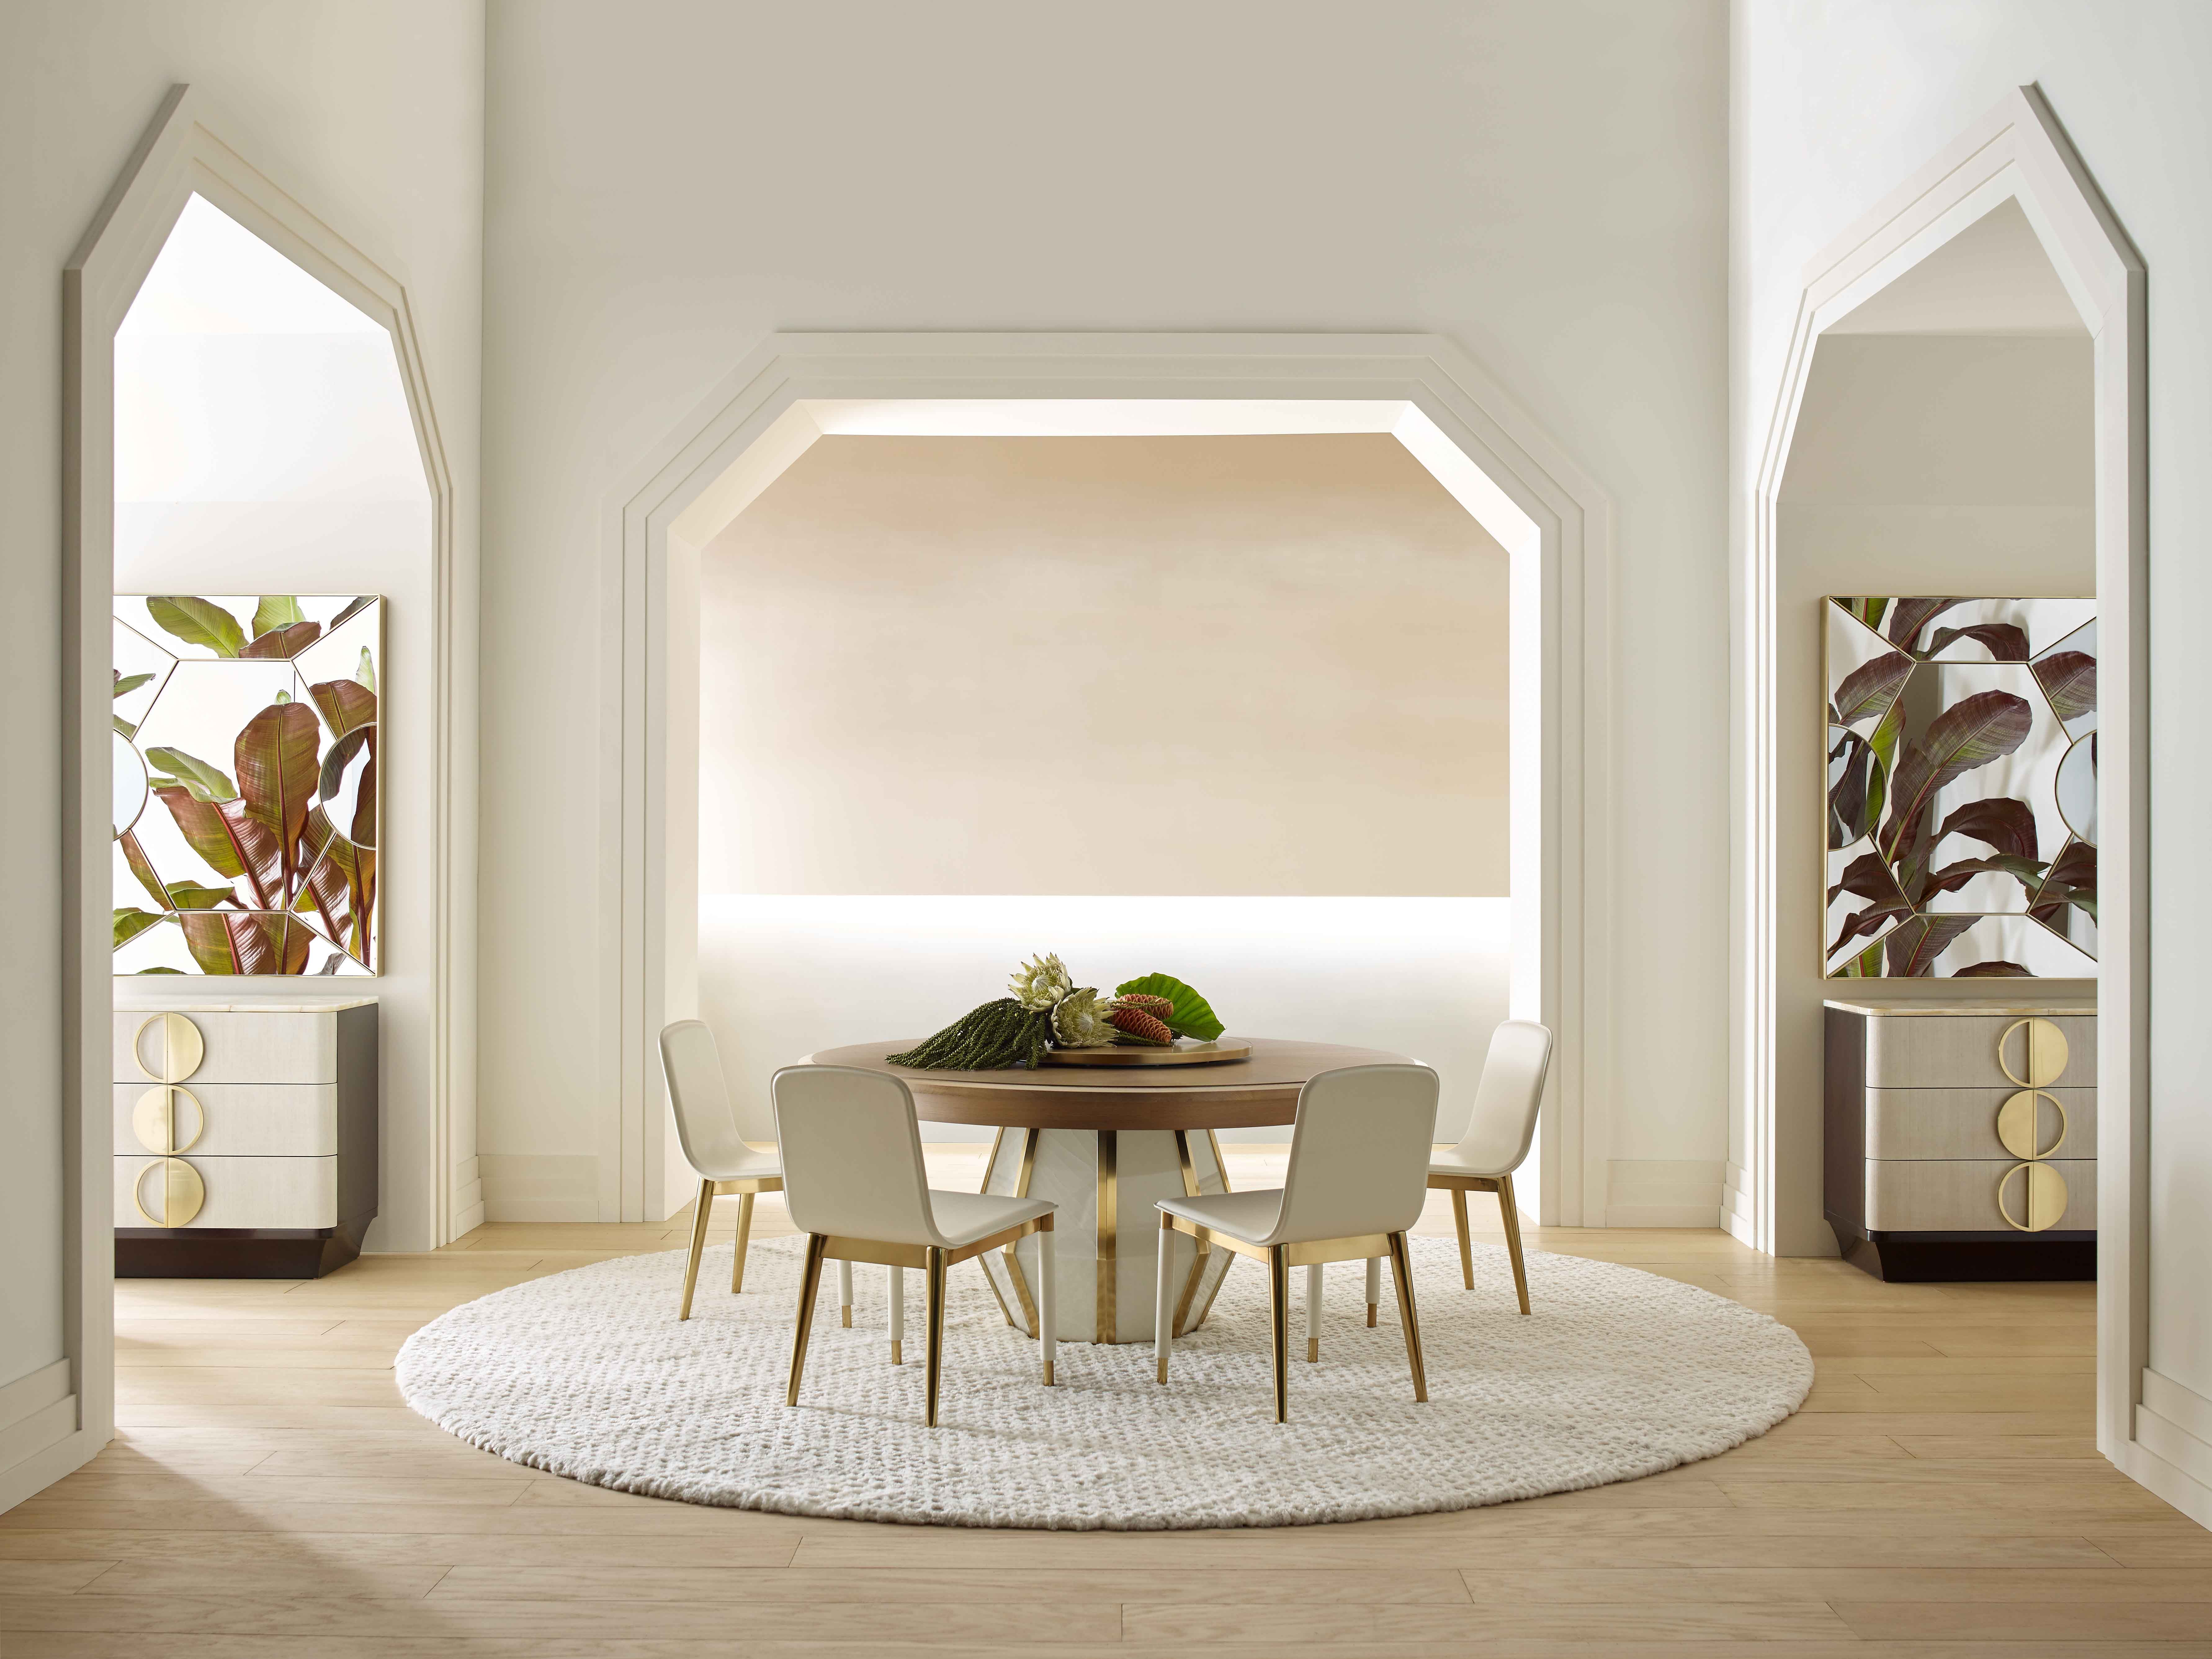 The Laura Kirar Collection For Baker Furniture With Images